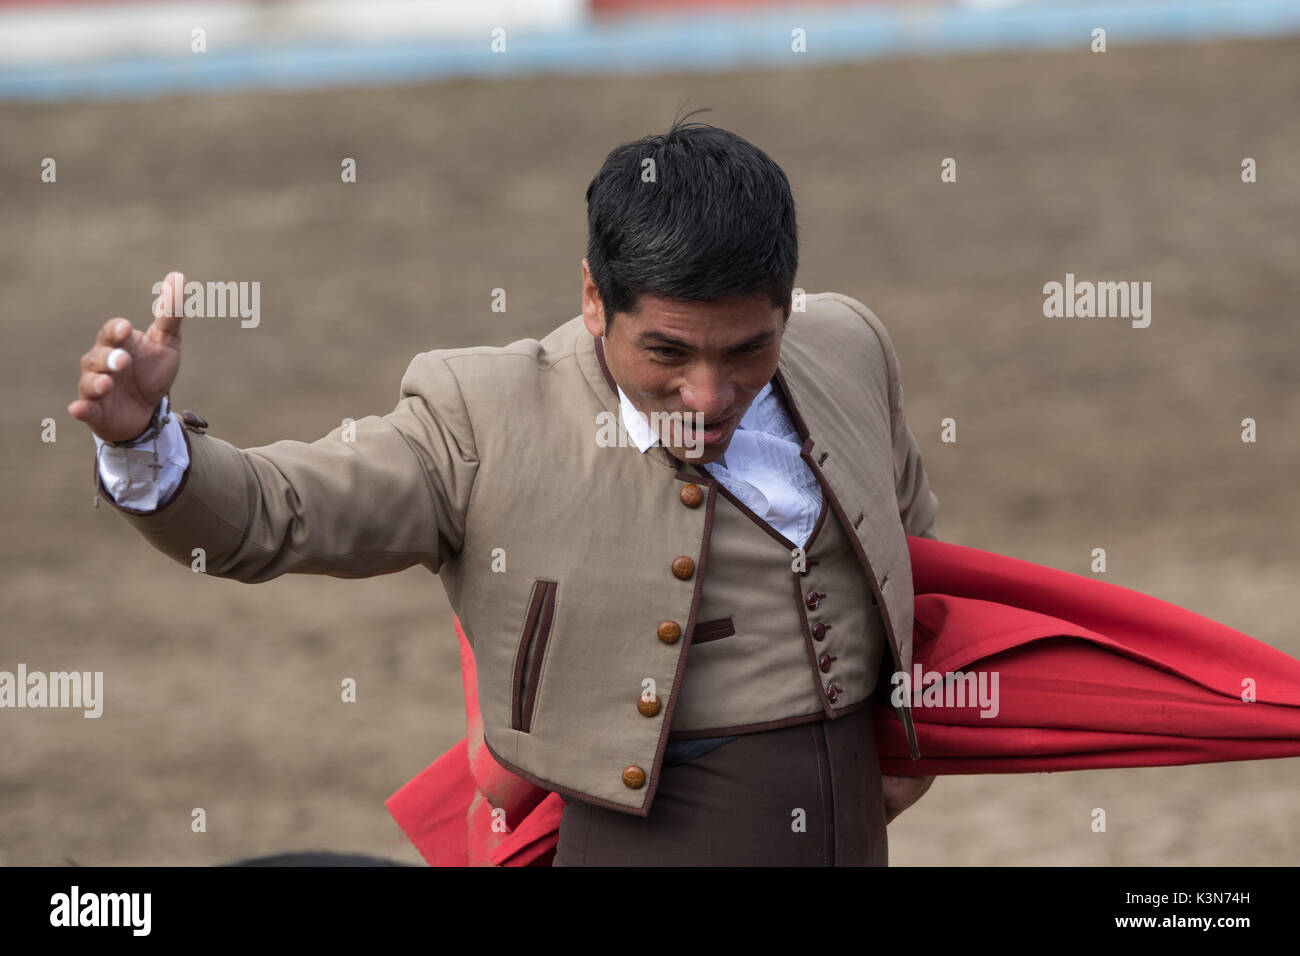 June 18, 2017 Pujili, Ecuador: bullfighter holds up his arm gloriously a moment after the sacrifice of the bull in the arena - Stock Image